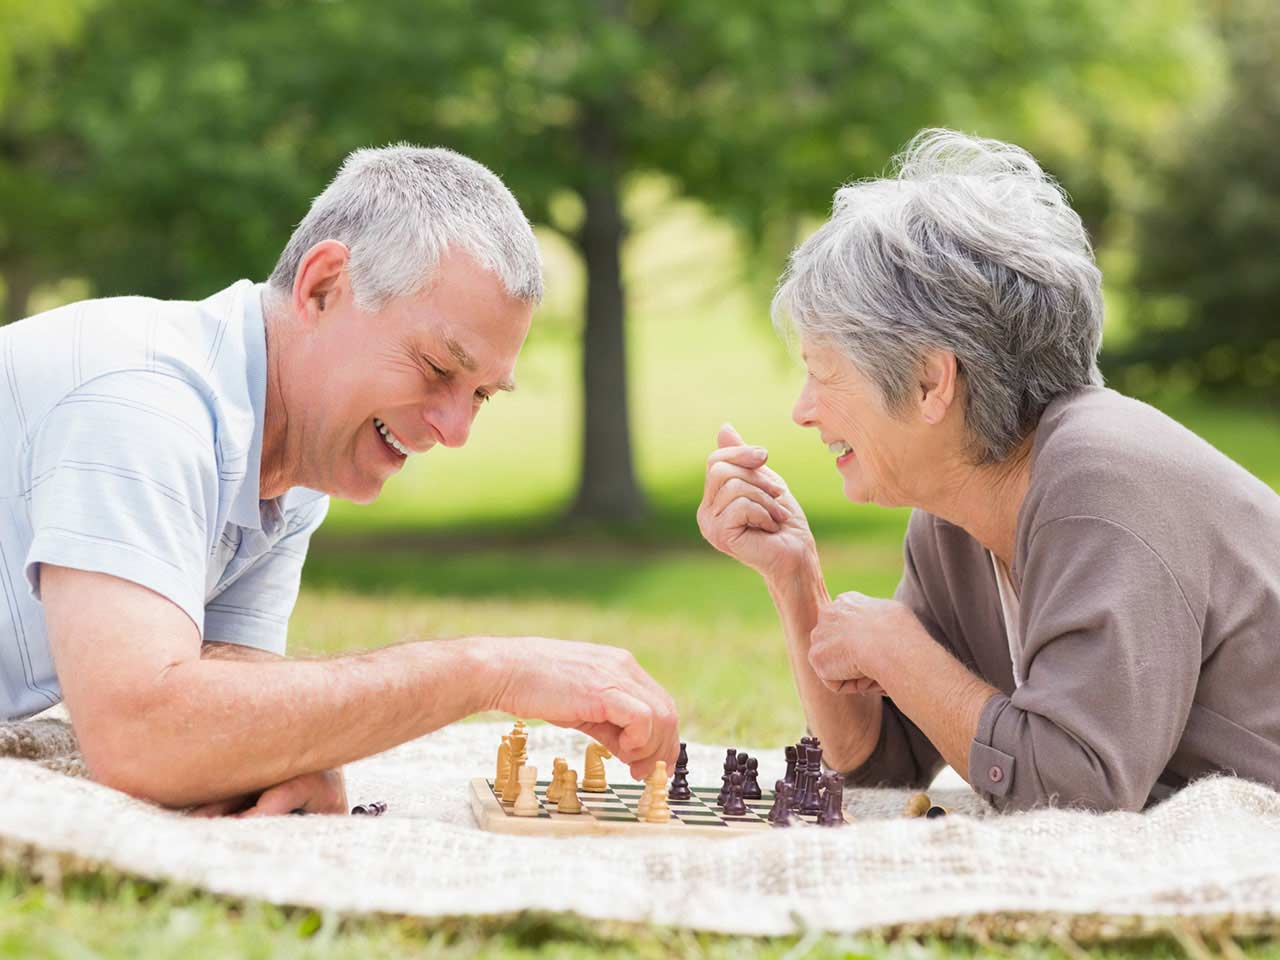 Mature couple laughing and playing chess in the park